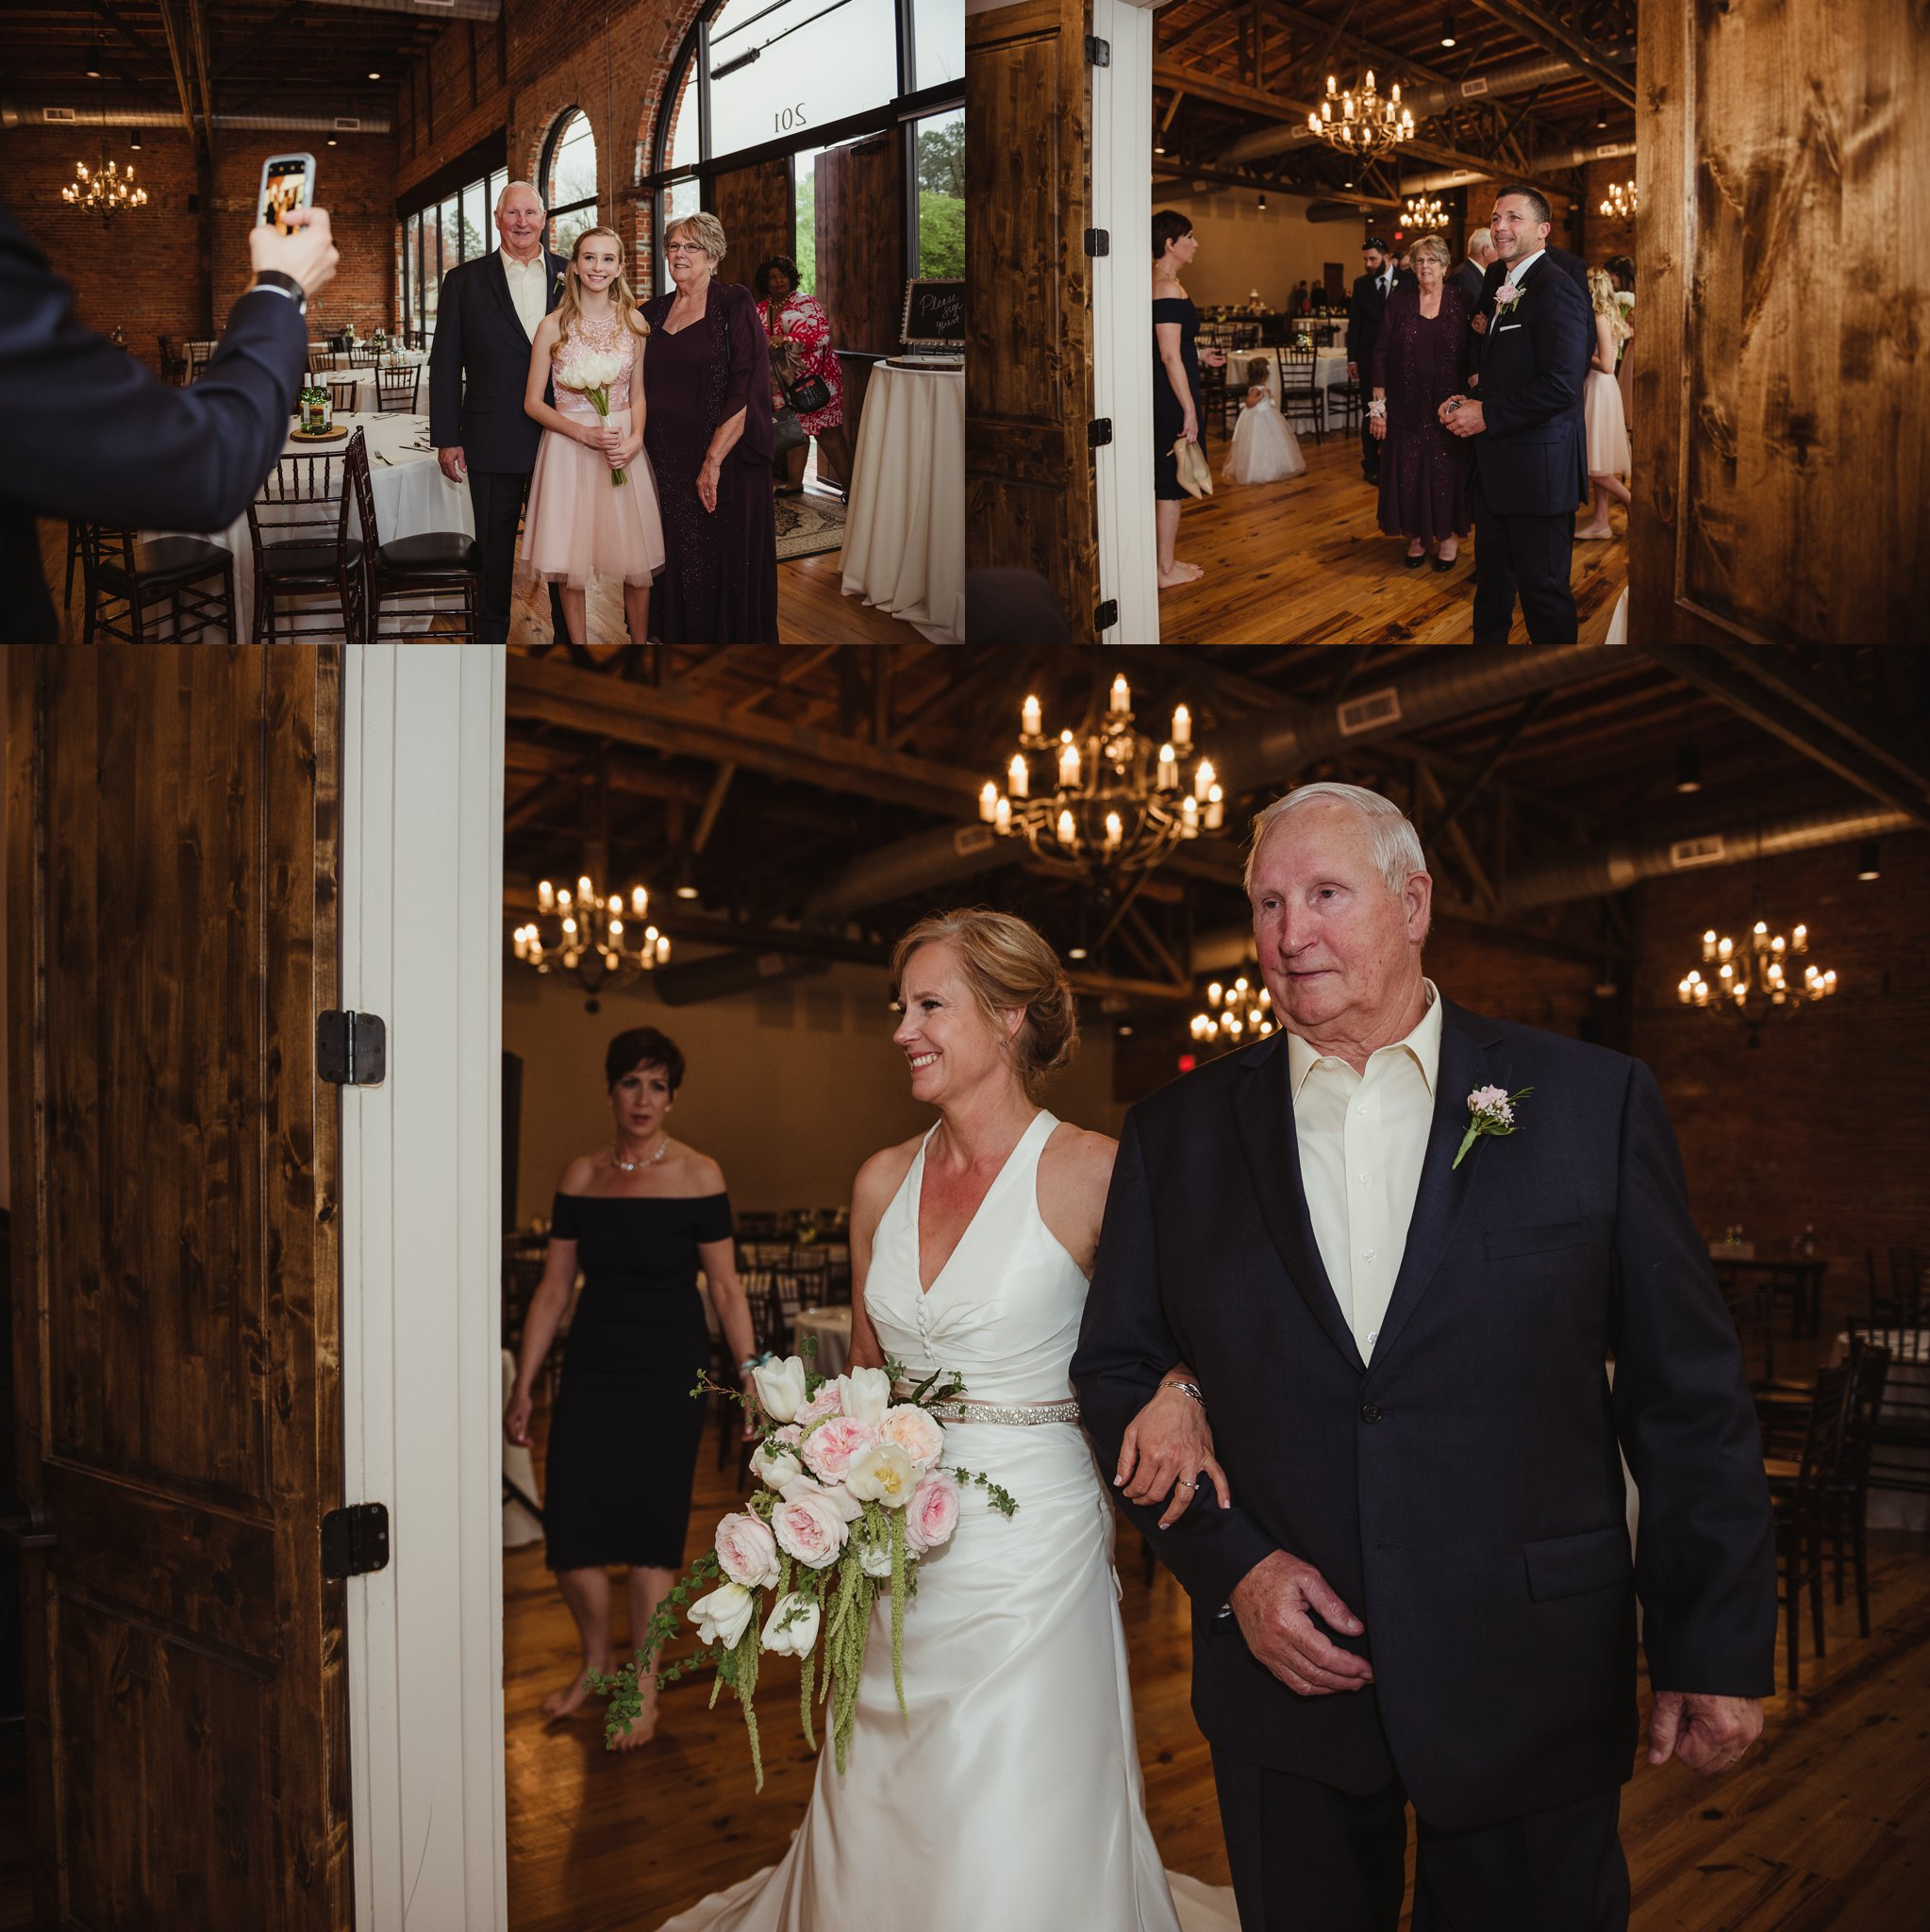 The bride and groom get ready to walk down the aisle at their wedding ceremony in Youngsville, NC, images taken by Rose Trail Images.